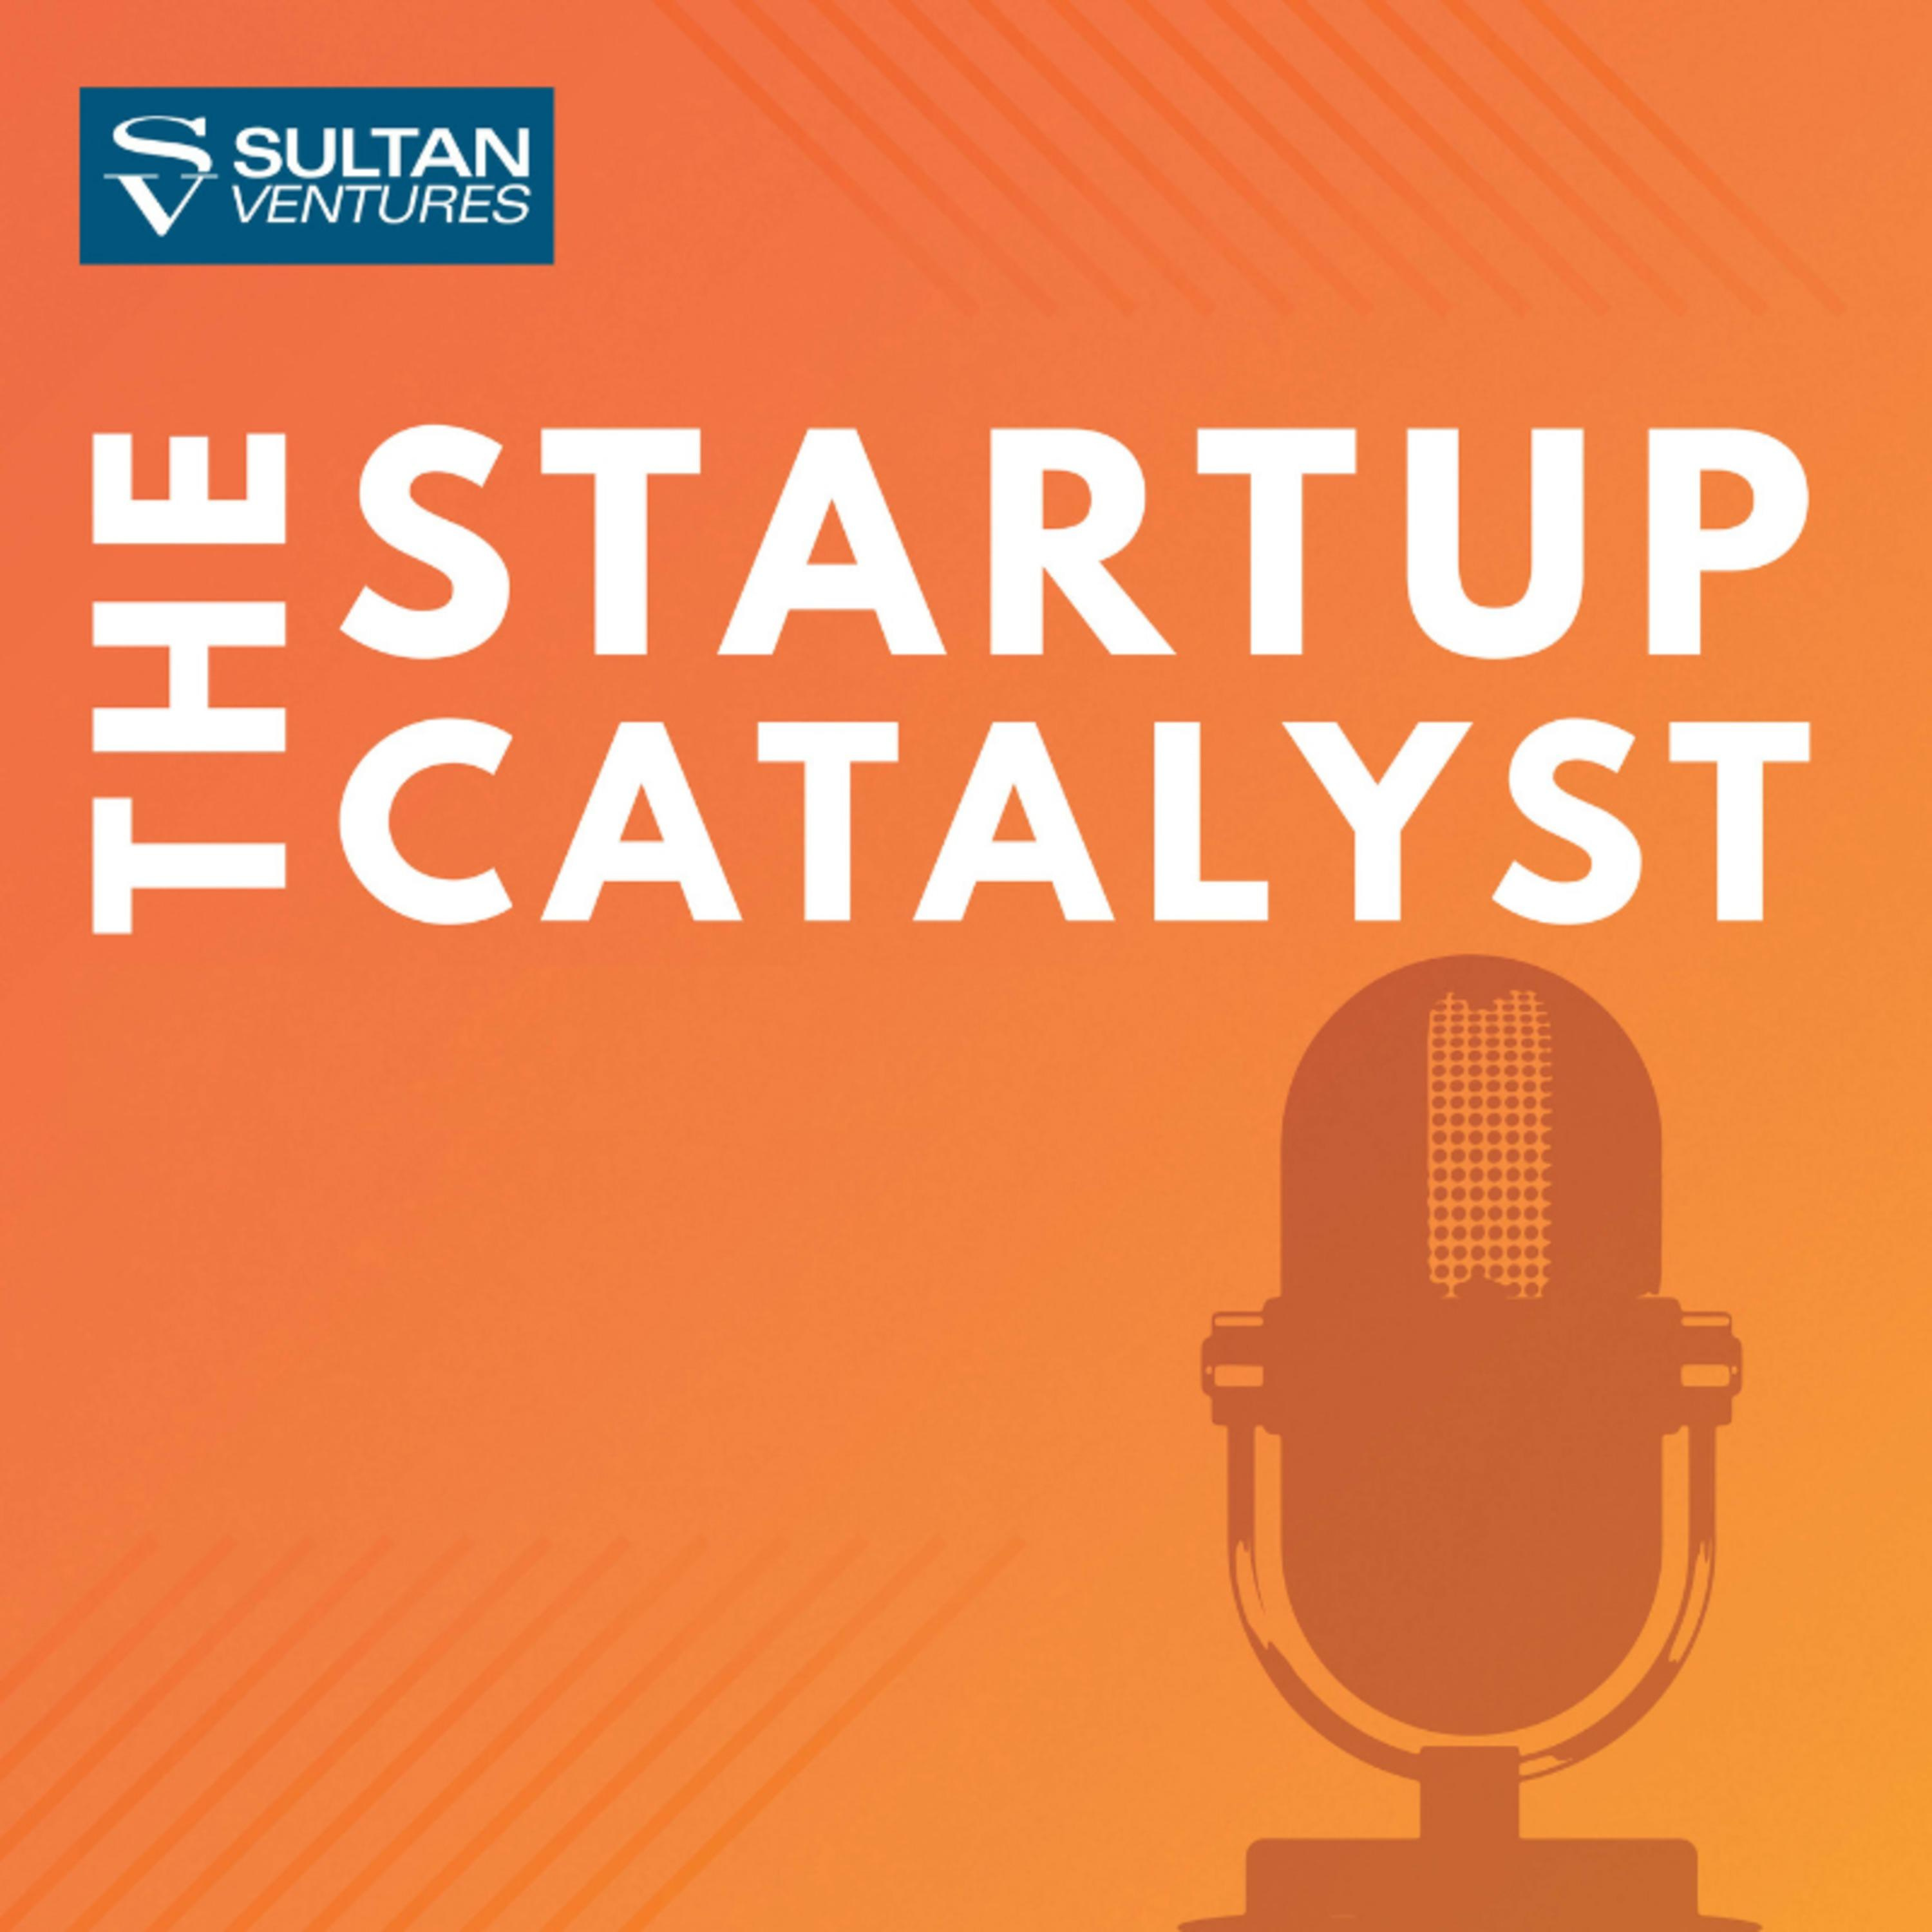 The Startup Catalyst